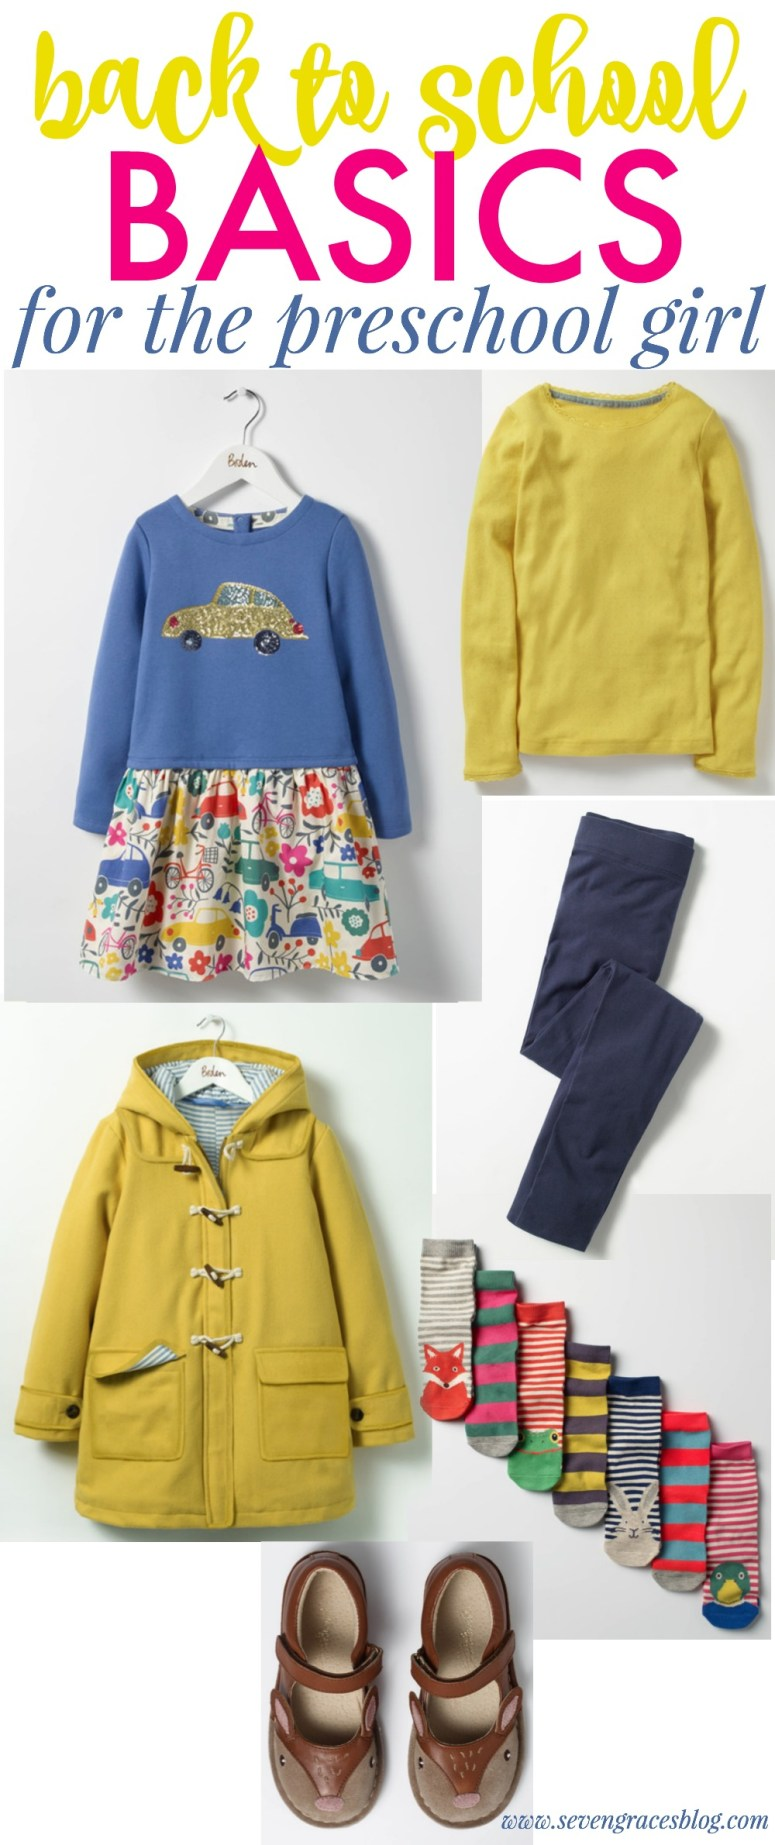 Back to School Mini Fashion: Best School Clothes Basics for the Preschool Girl